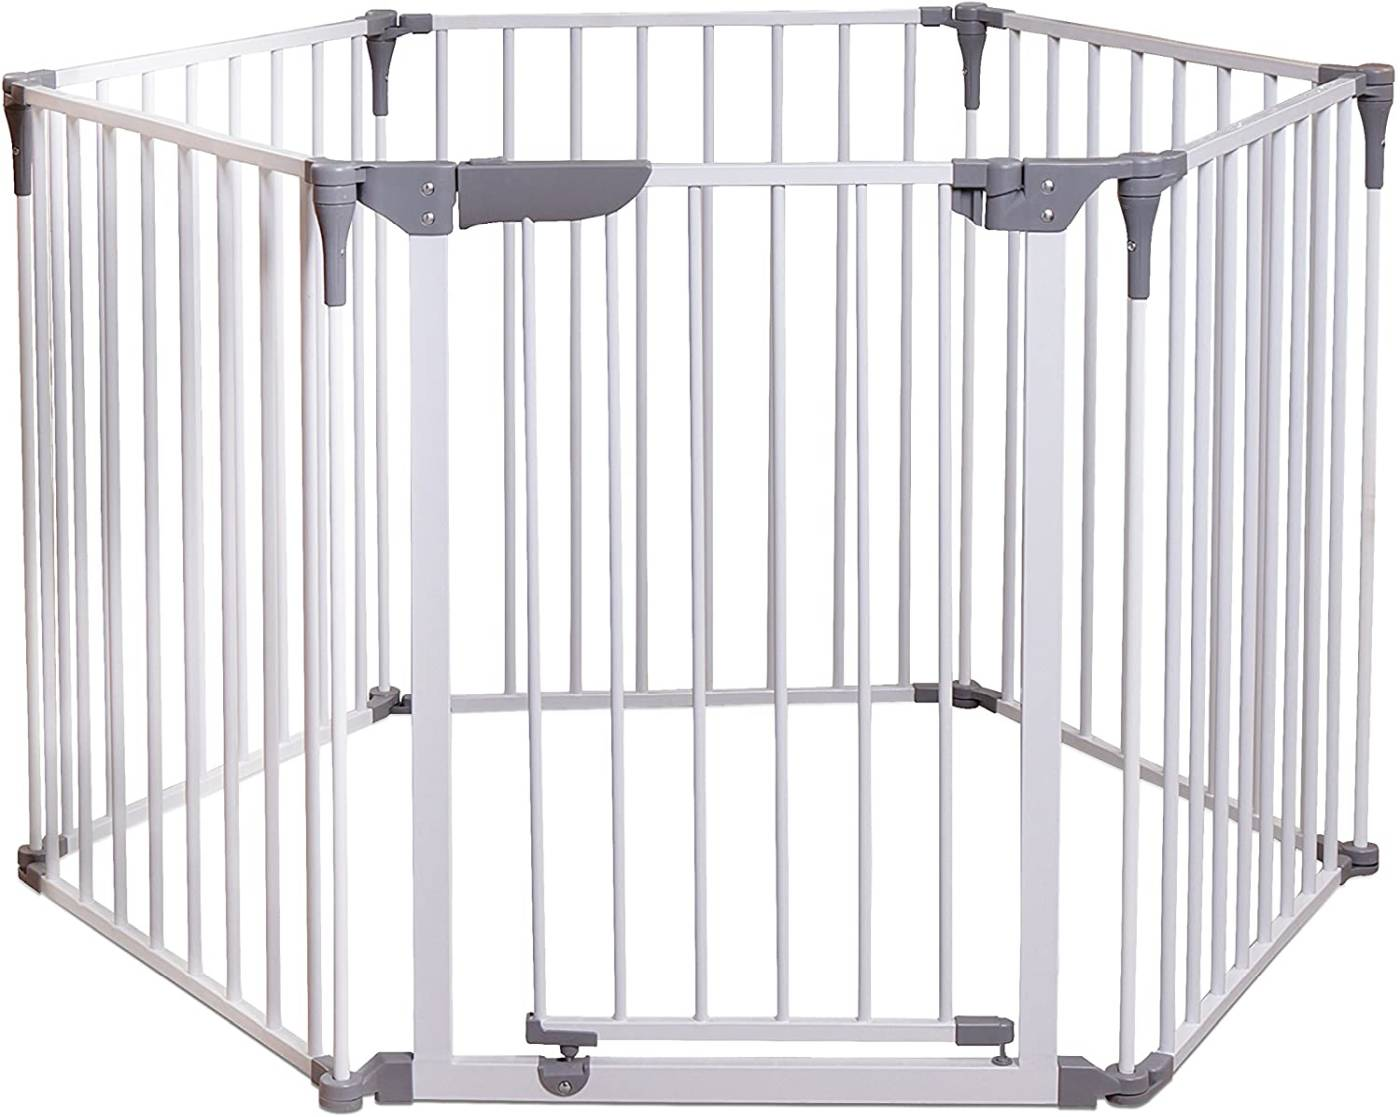 dreambaby royale 3 in 1 converta play pen gate, white